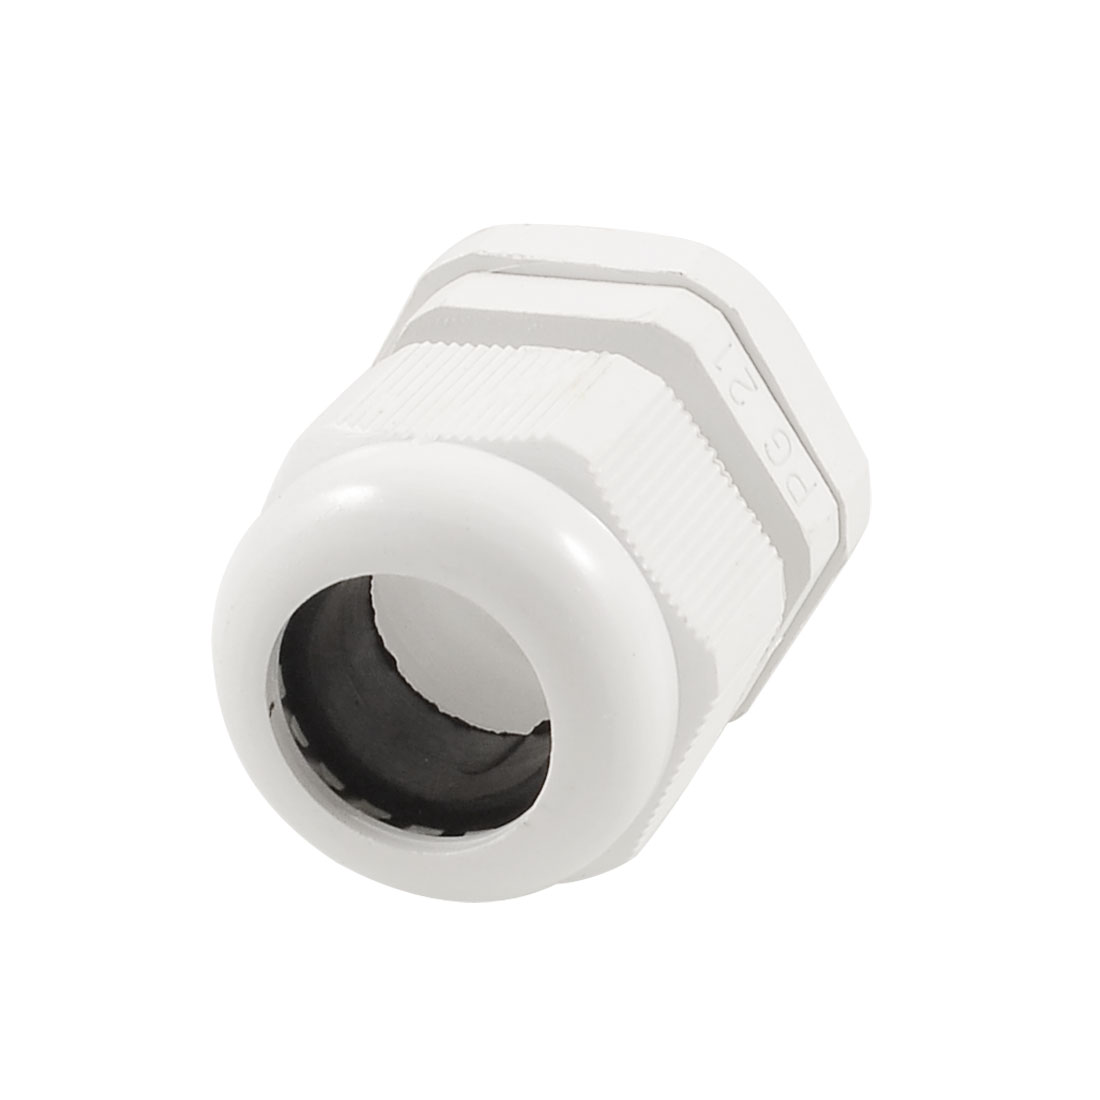 13mm-18mm Cable Range PG21 White Plastic IP67 Waterproof Cable Glands